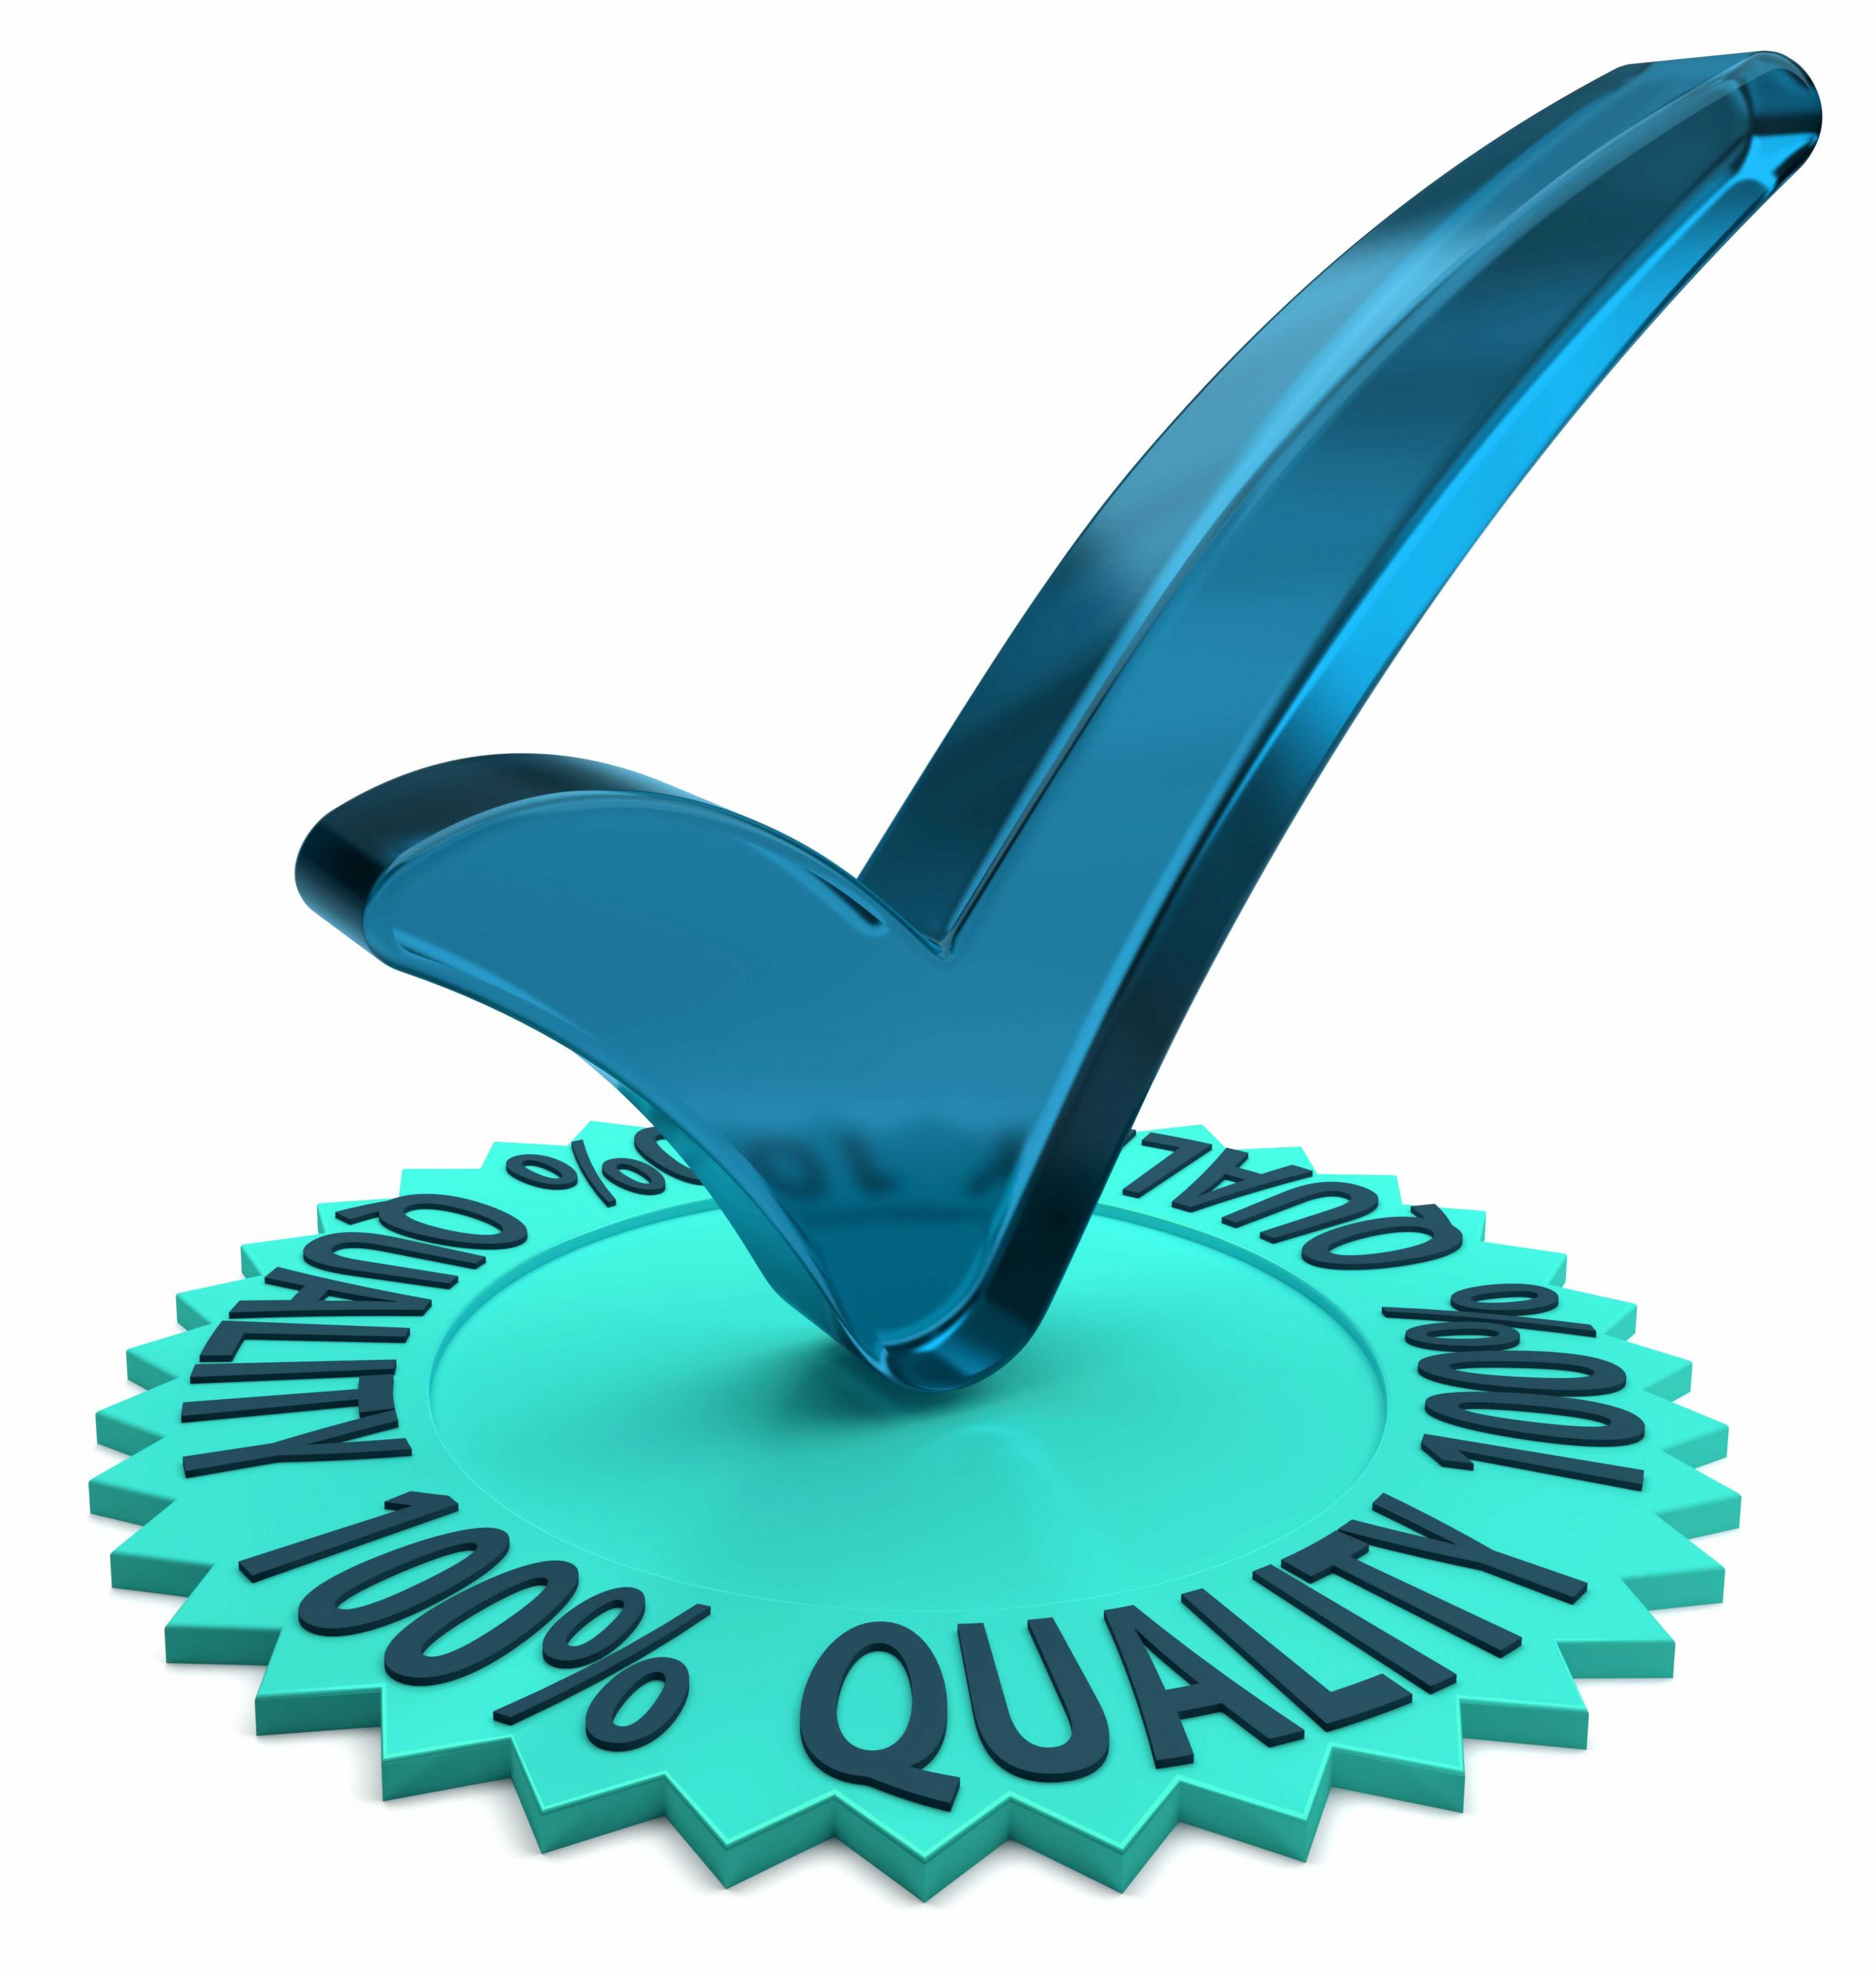 quality assurance for desktop publishing